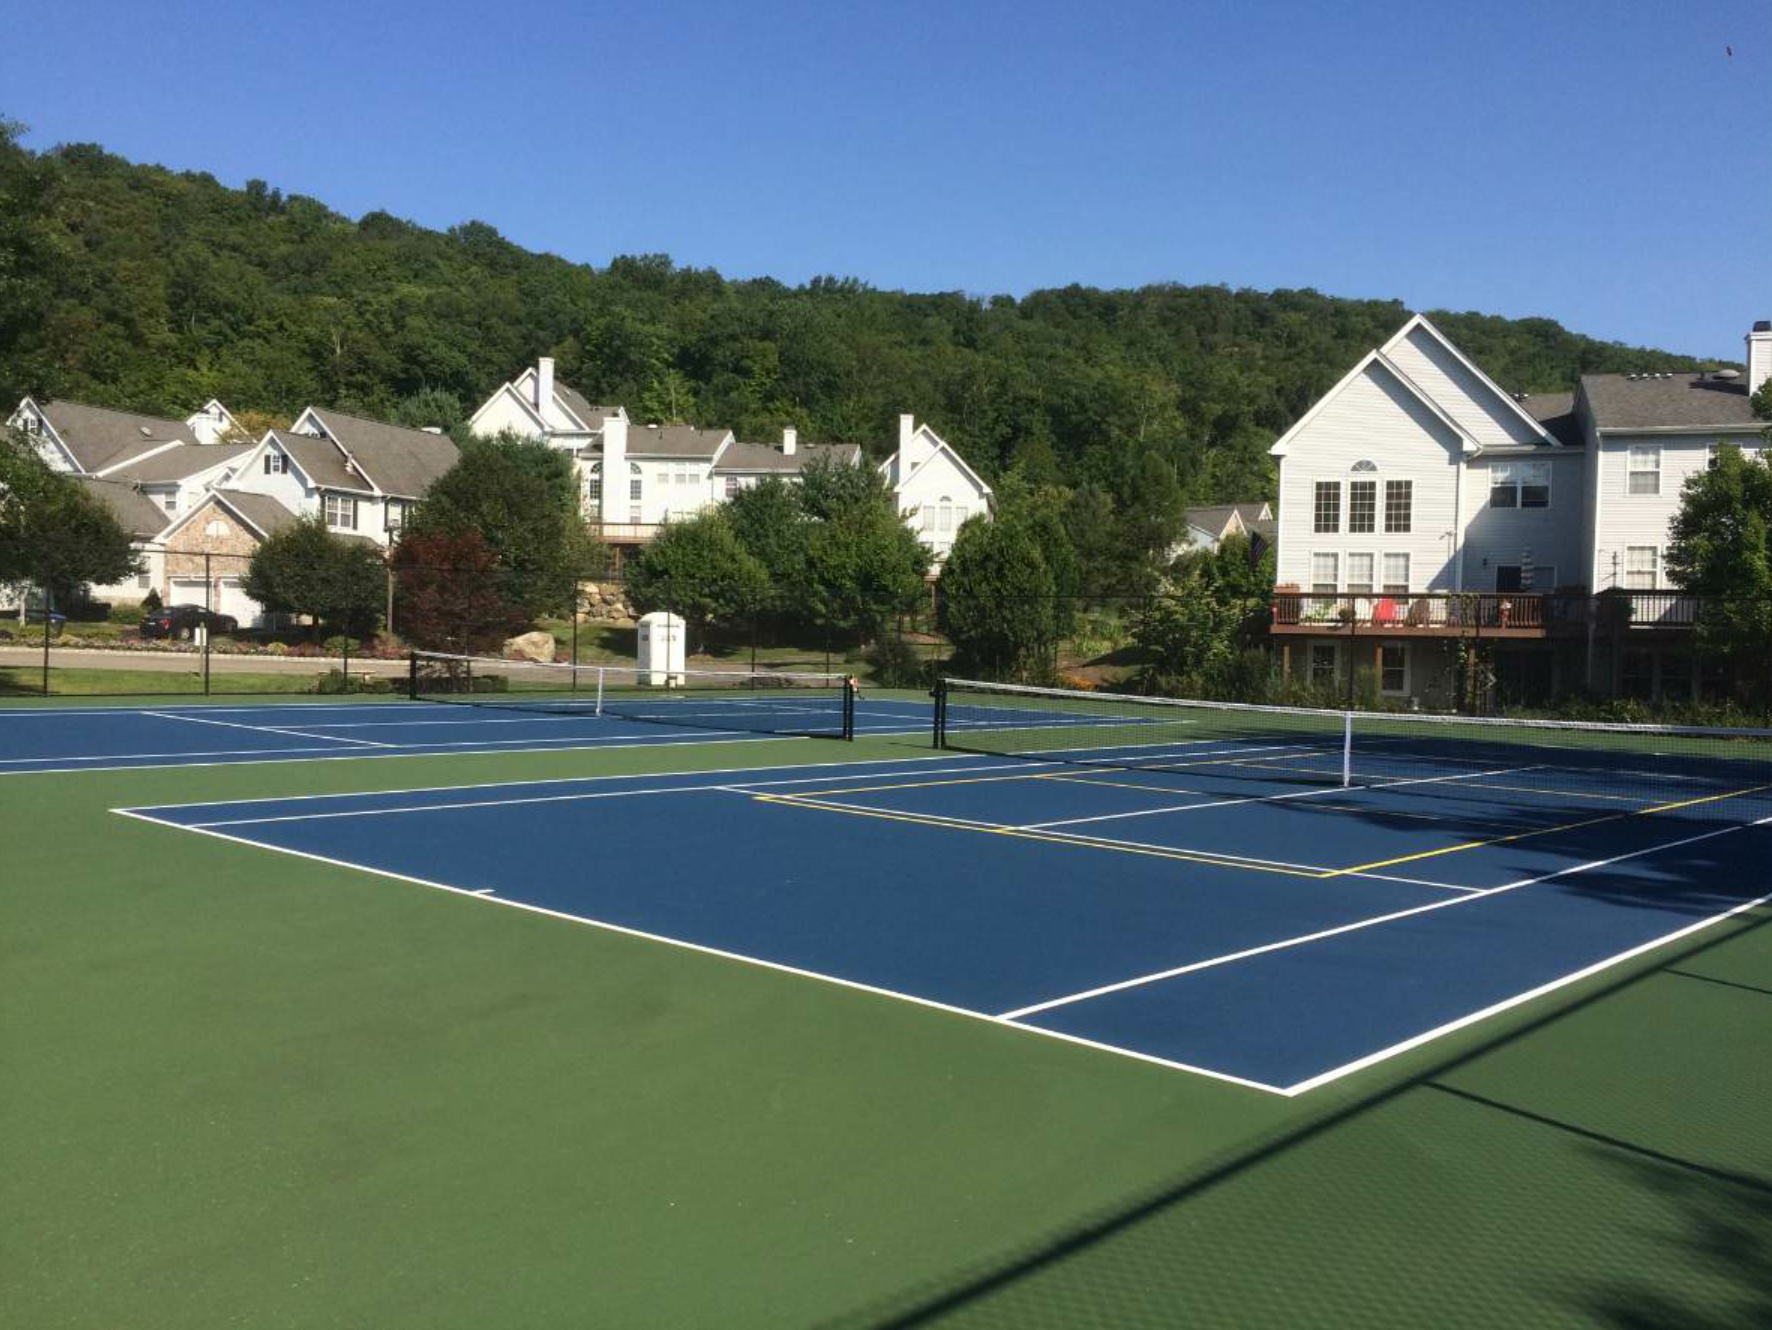 Superior has also rehabilitated two courts at The Woodlands community in Tuxedo, New York.